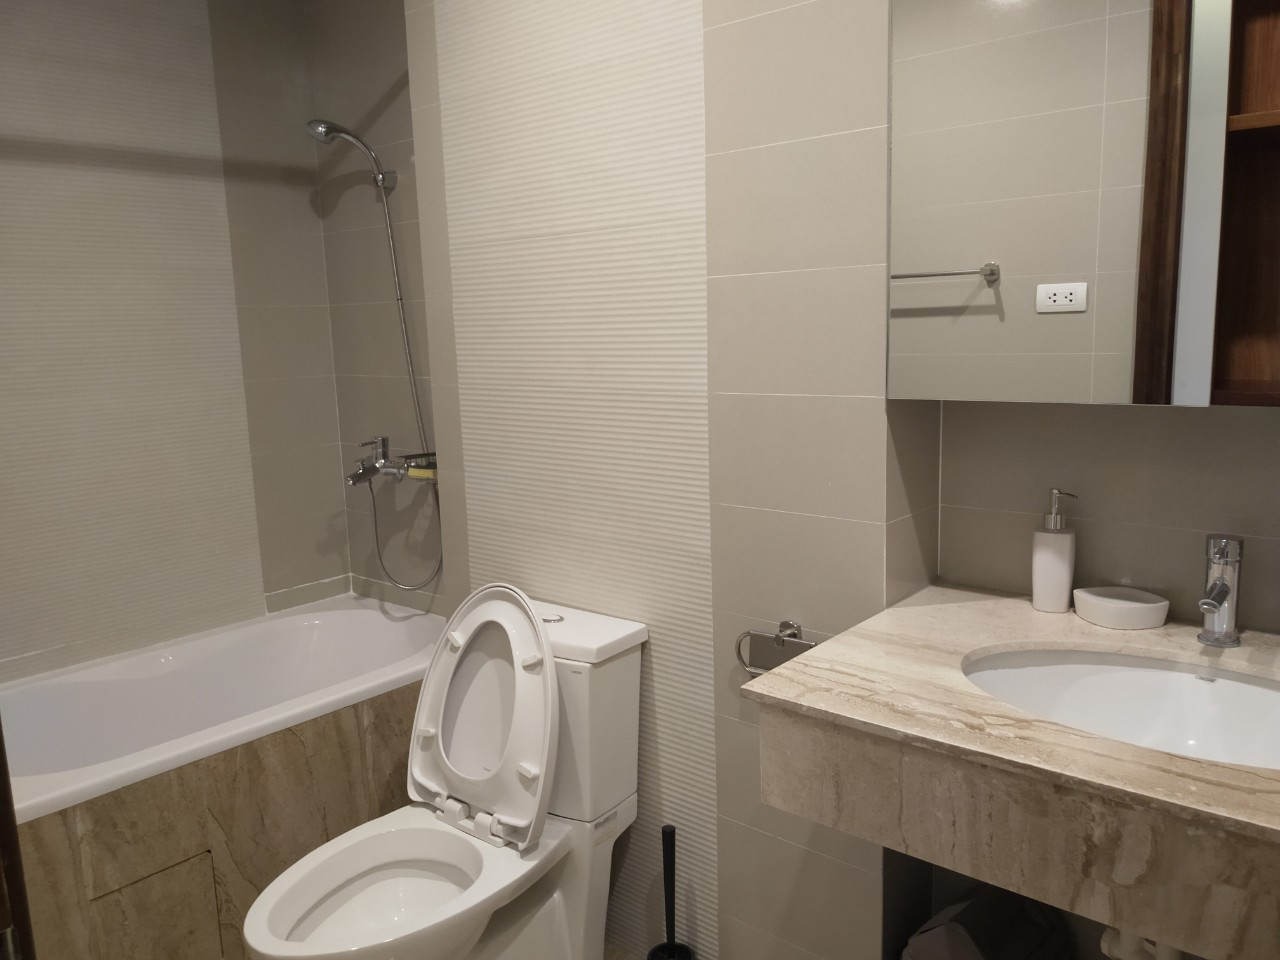 Bright and City view 2 bedroom apartment for rent in Watermark, Xuan Dieu street,Tay Ho district 9